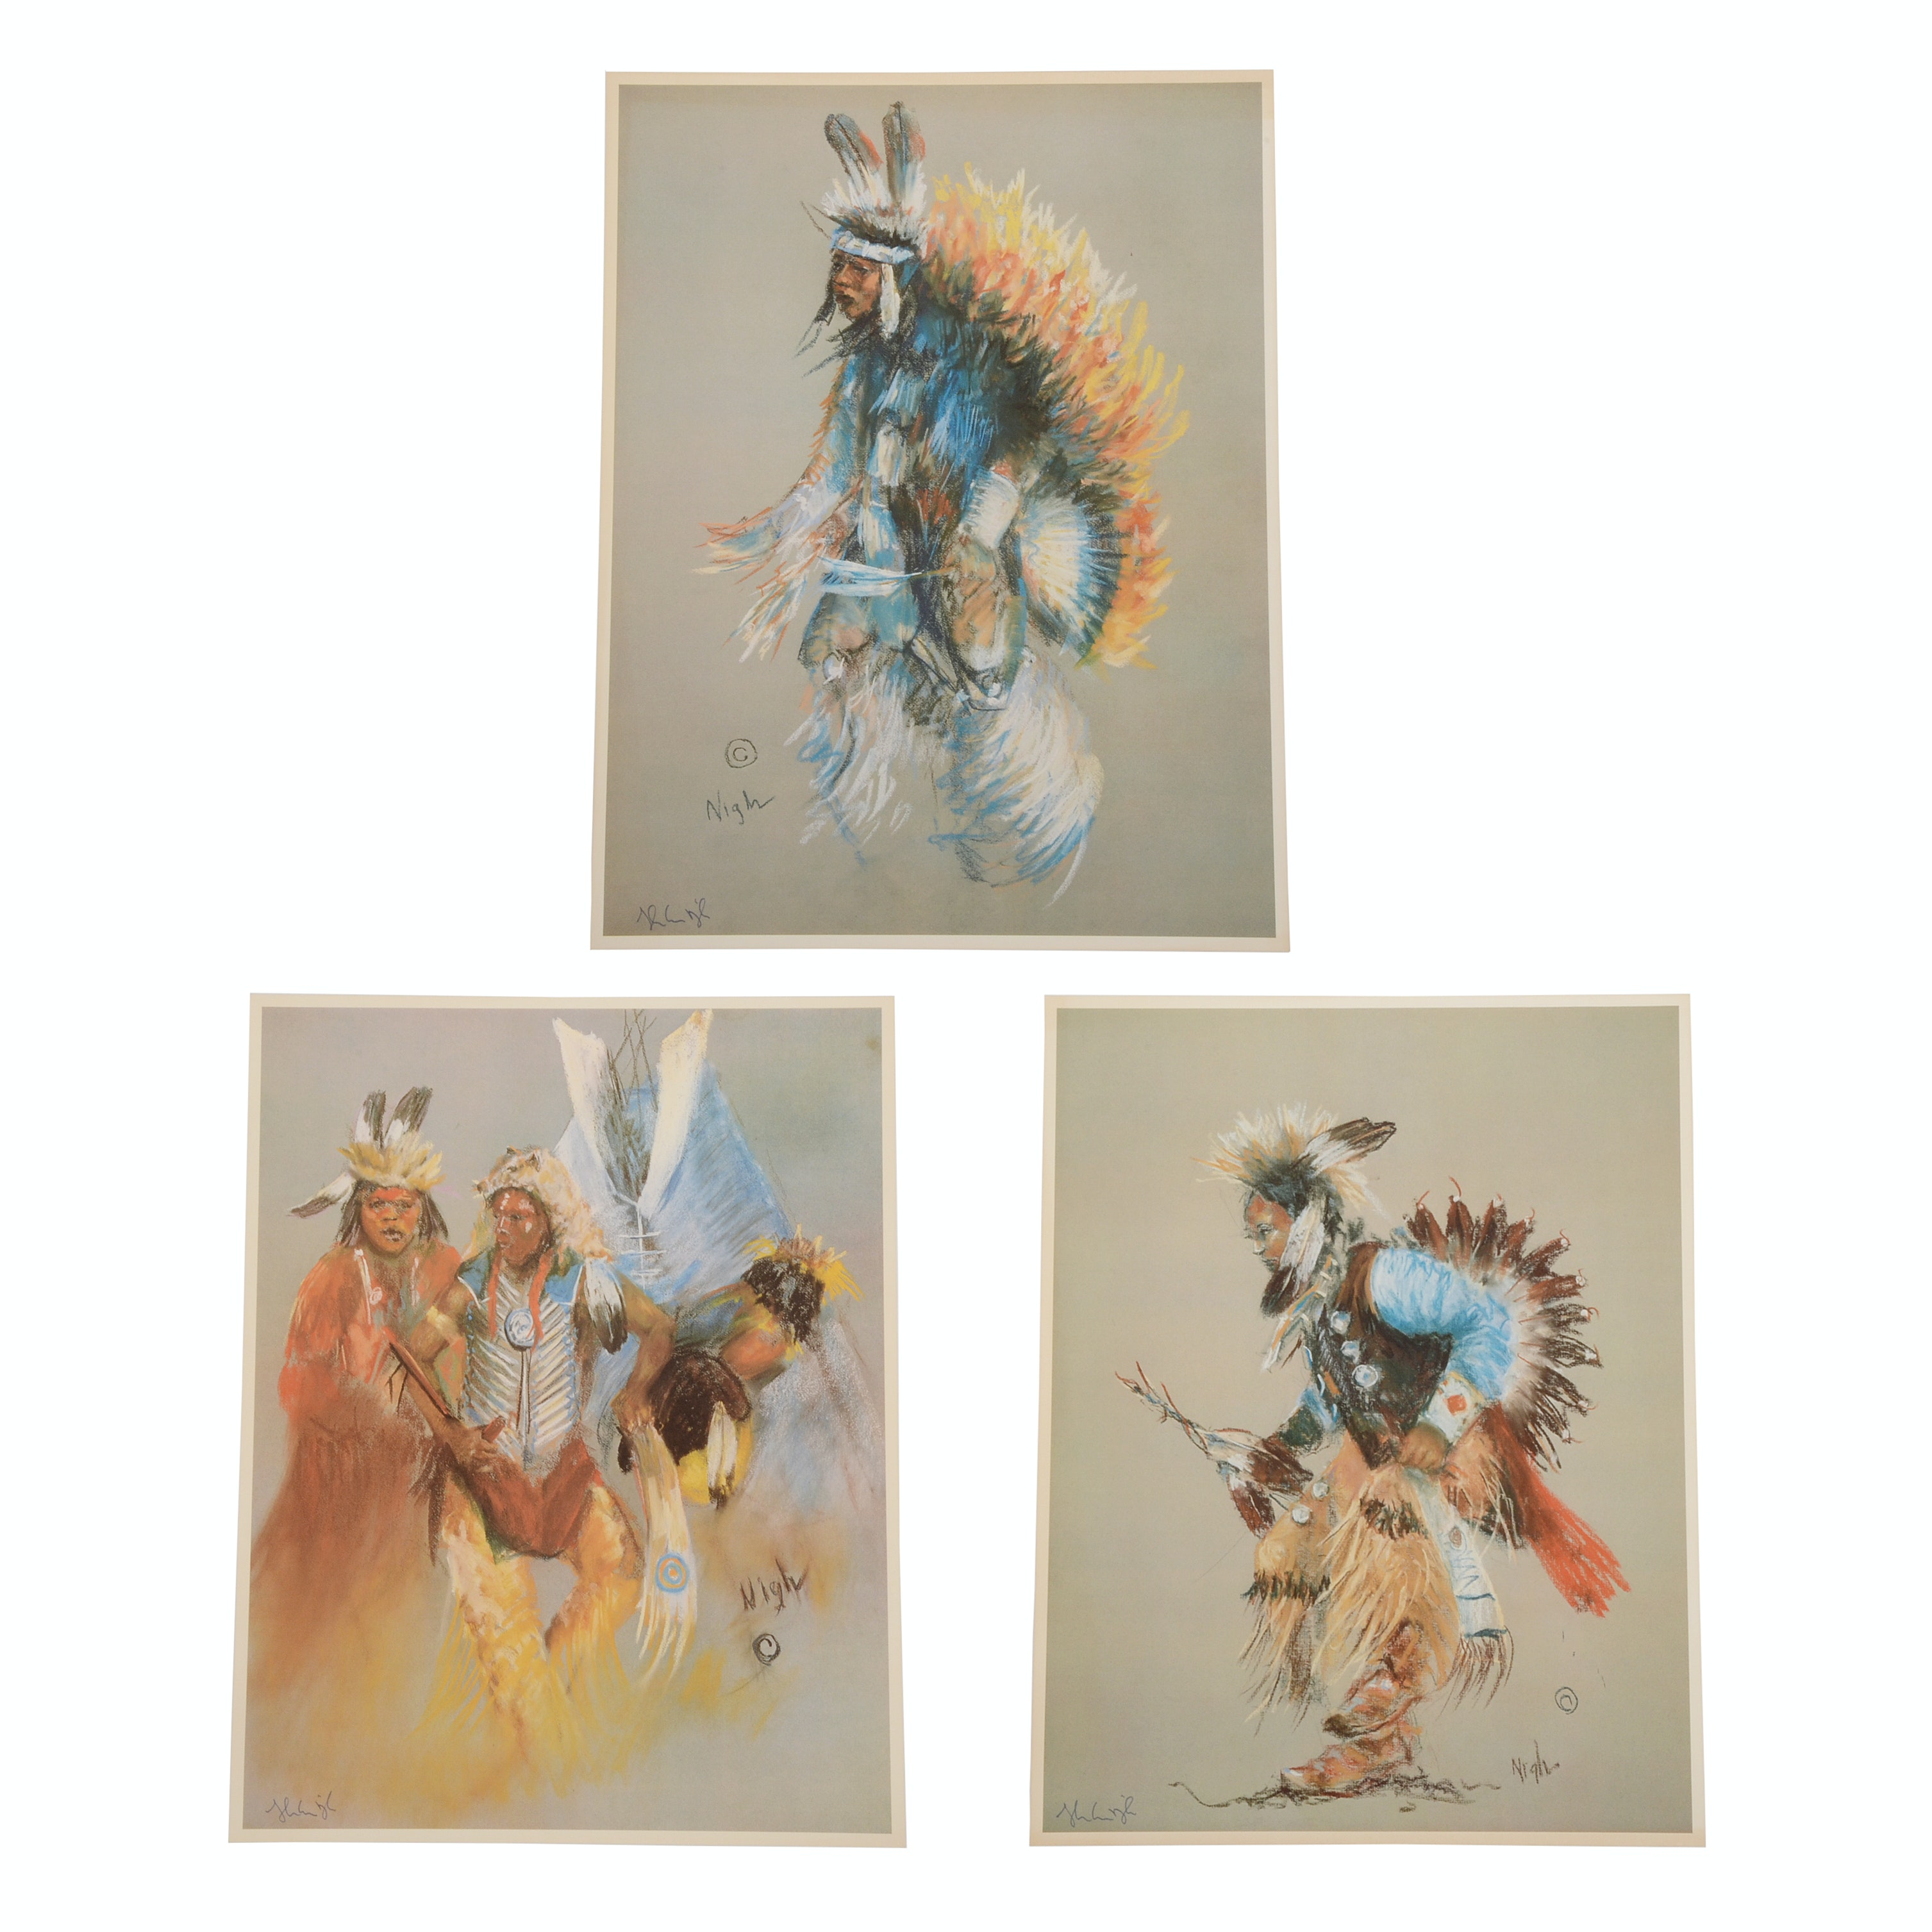 Three Nigh Signed Offset Lithographs of Native American Dancers